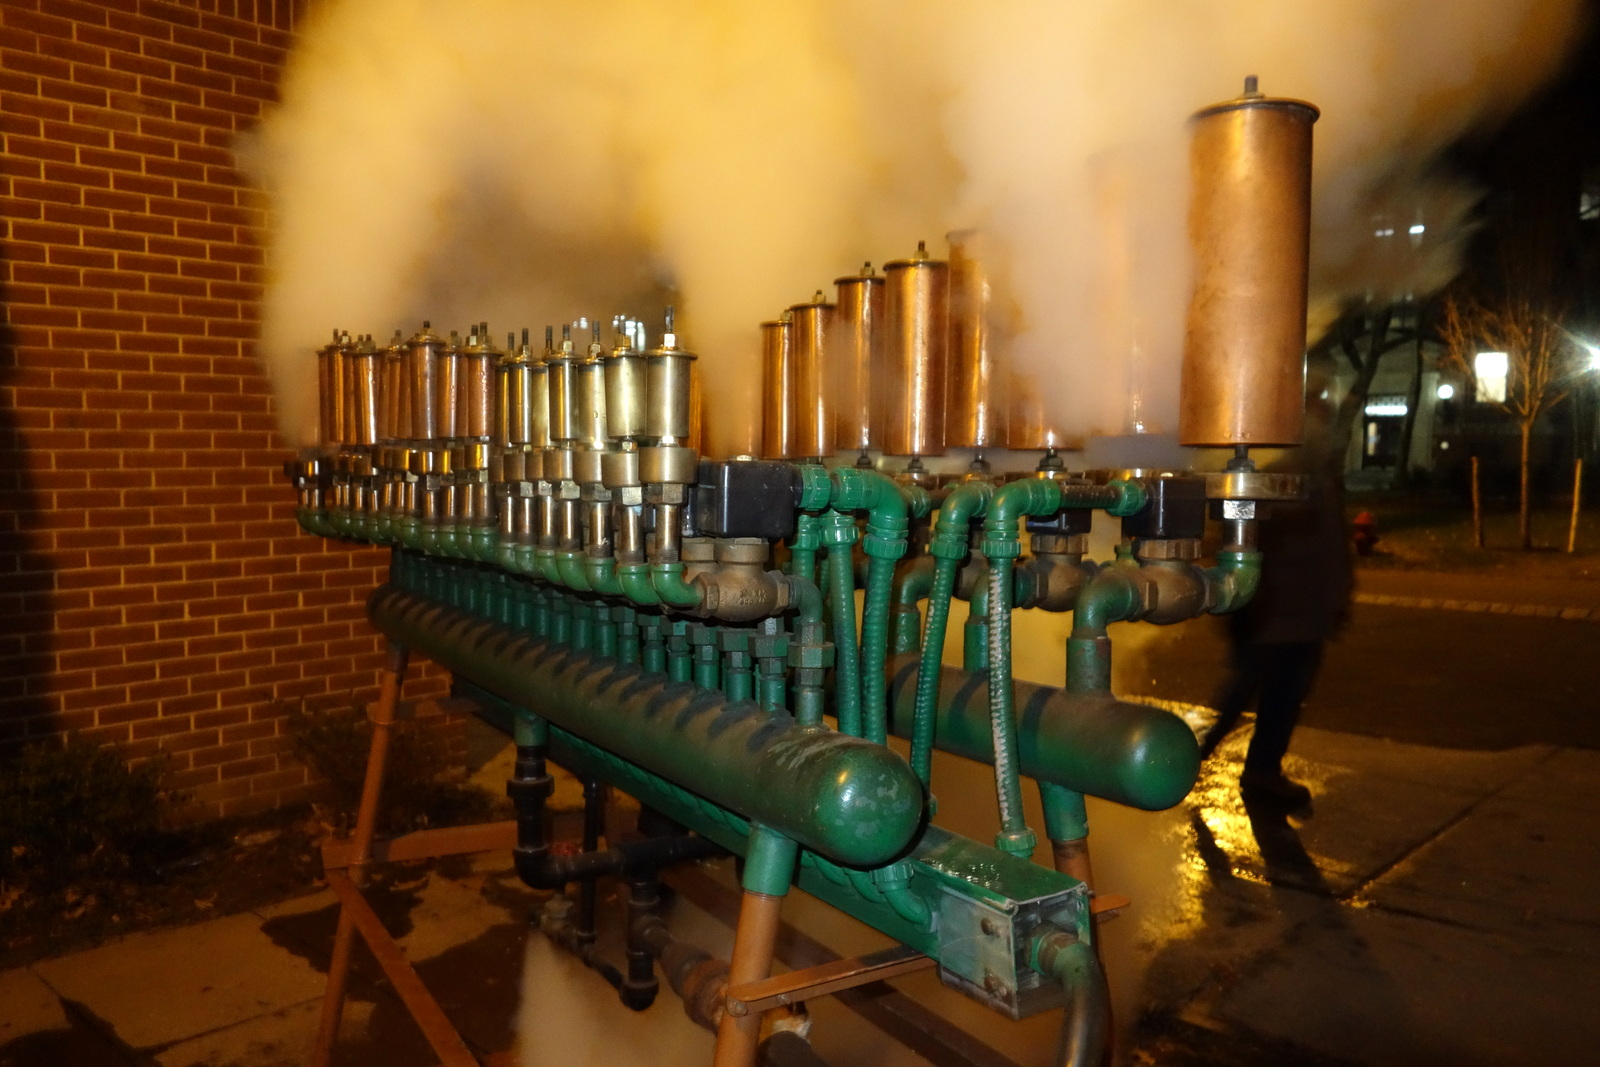 Knife Switches, Patent Stamps, and Cats – Celebrating the New Year with Pratt's Steam-Power